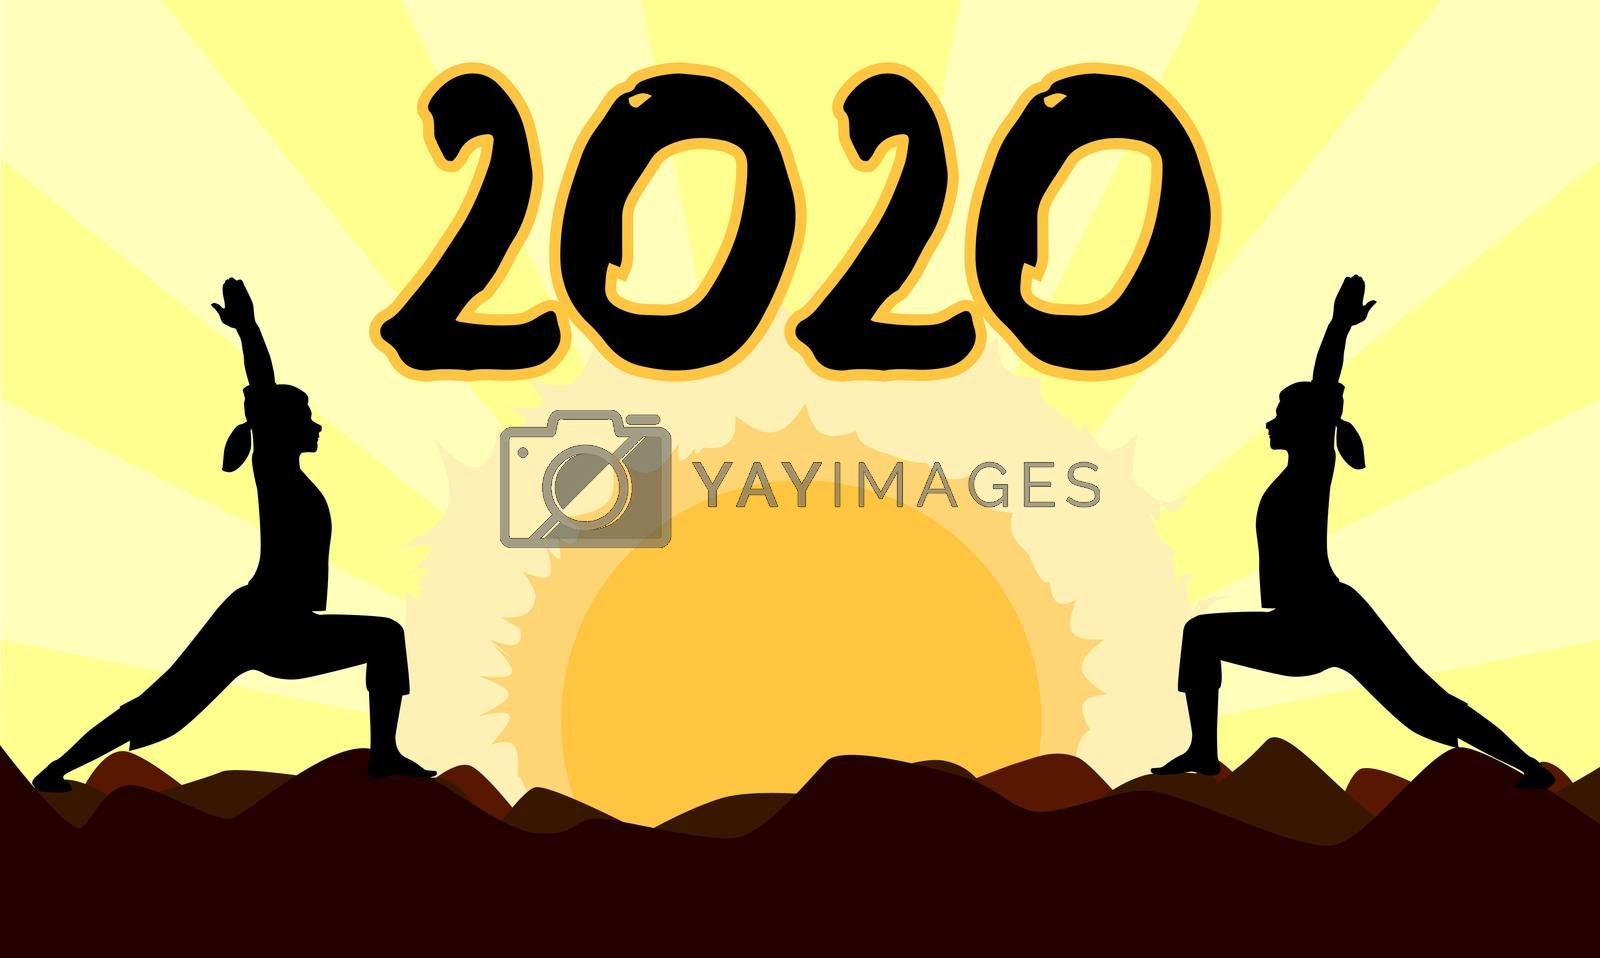 2 yoga poses performed by young women in silhouette set against a yellow sunset with the date 2020